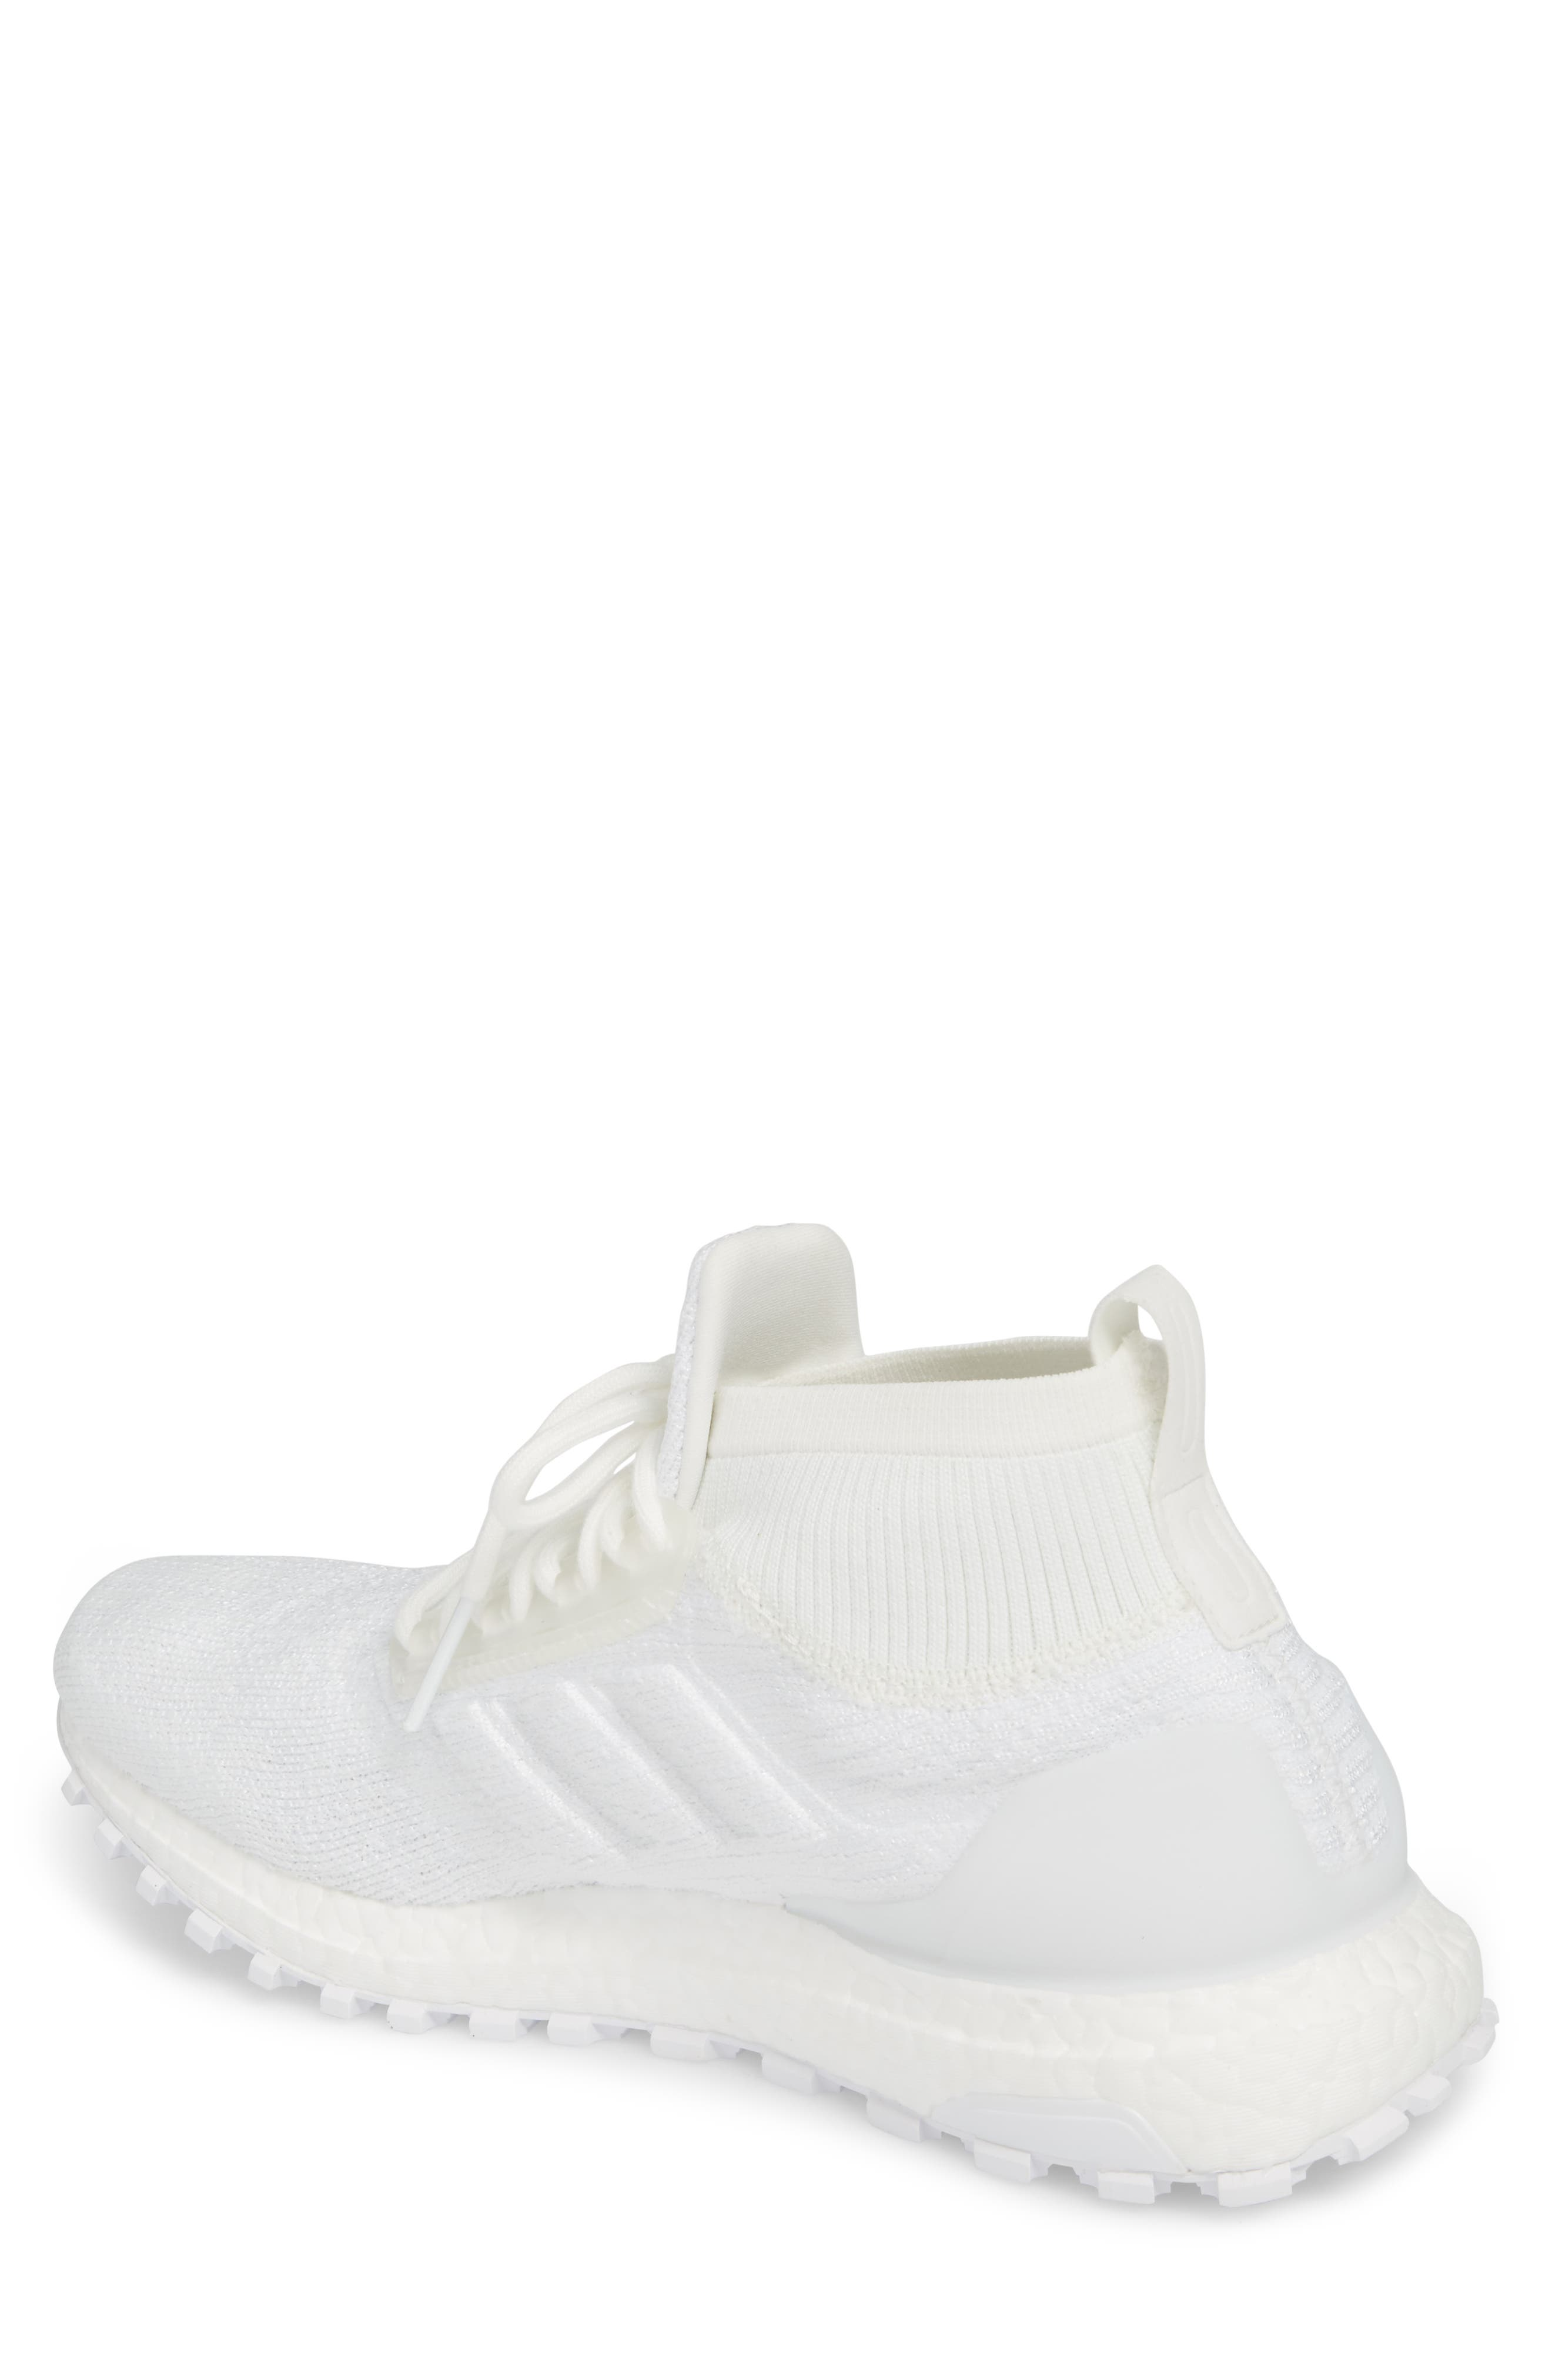 UltraBoost All Terrain Water Resistant Running Shoe,                             Alternate thumbnail 2, color,                             Non-Dyed White